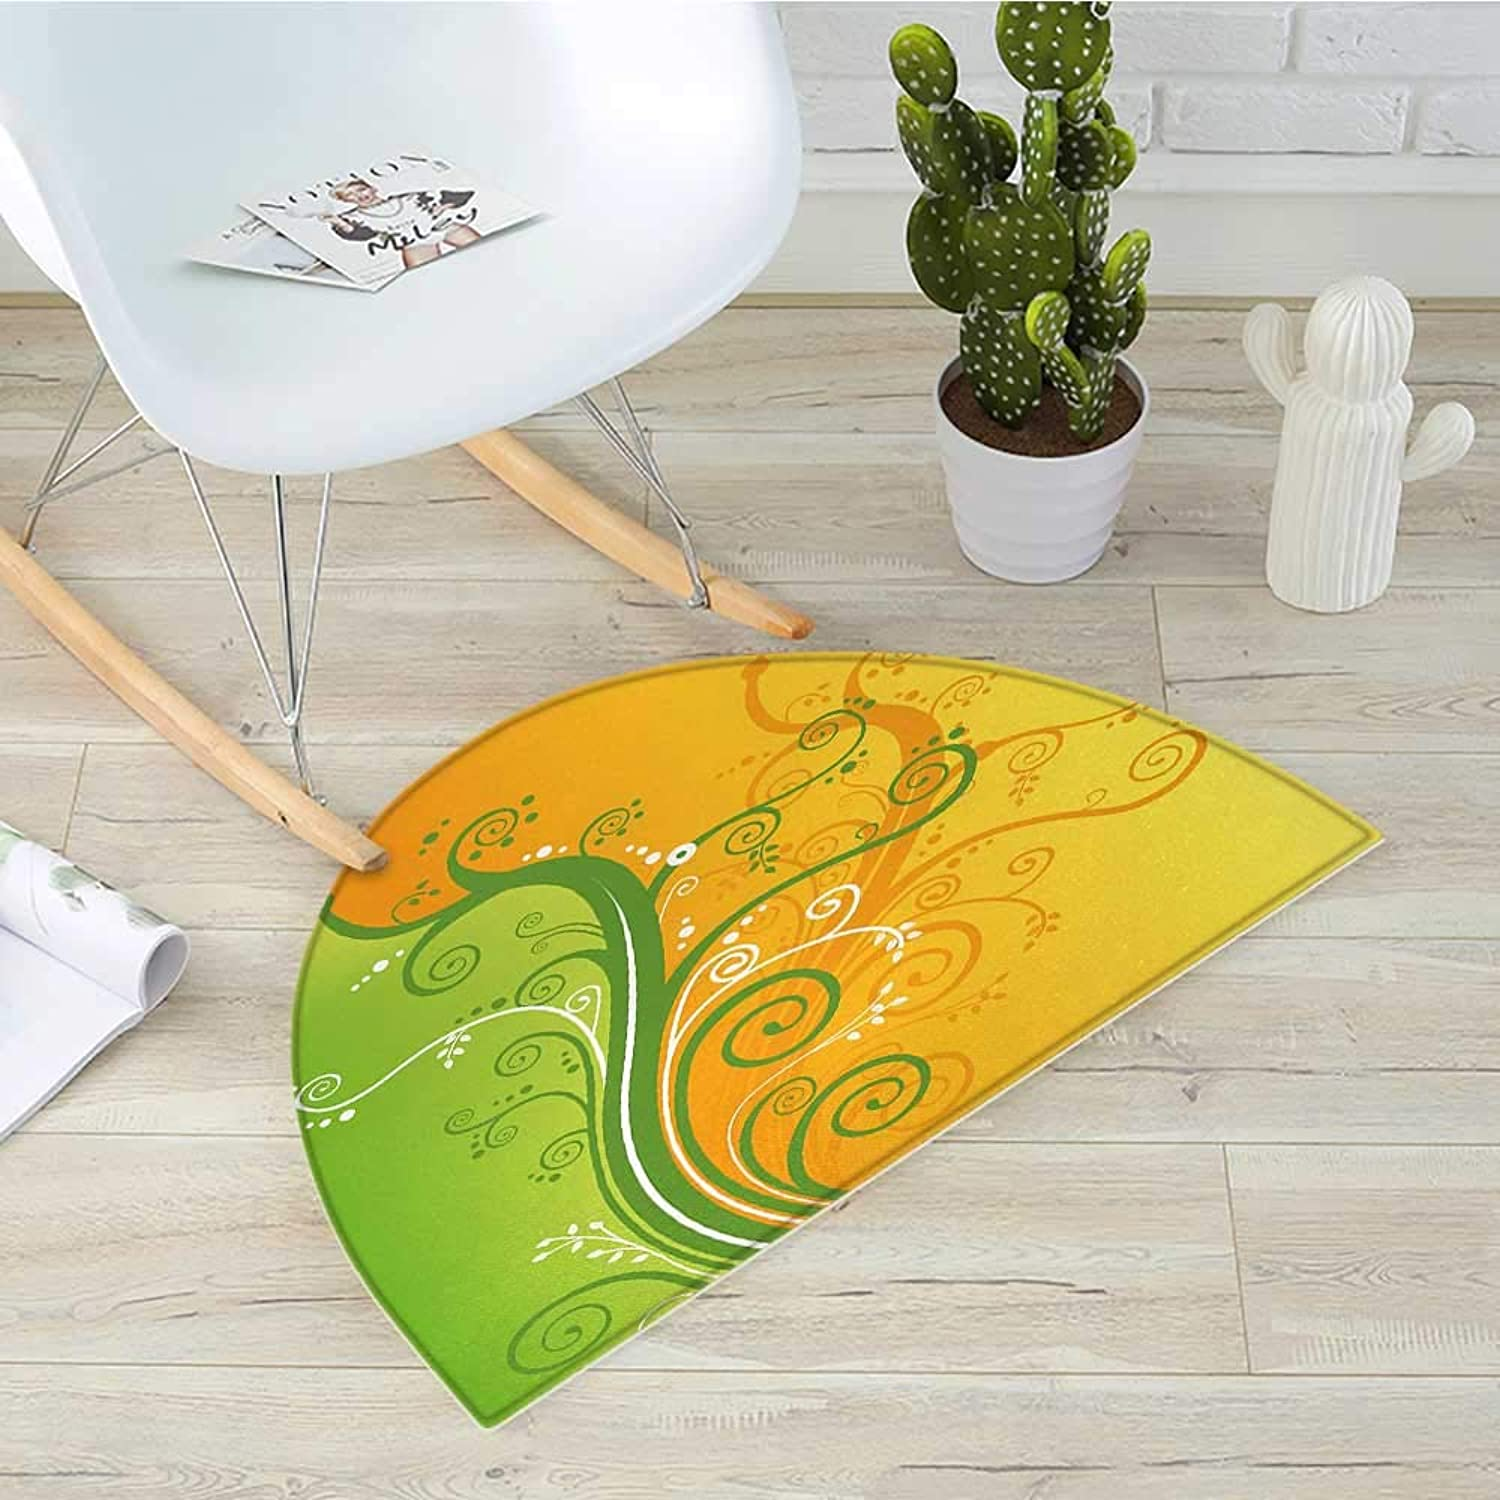 Modern Semicircular CushionFloral Flower Swirls Leaves on The Branches Design Modern Print Entry Door Mat H 39.3  xD 59  Light Green Marigold and White